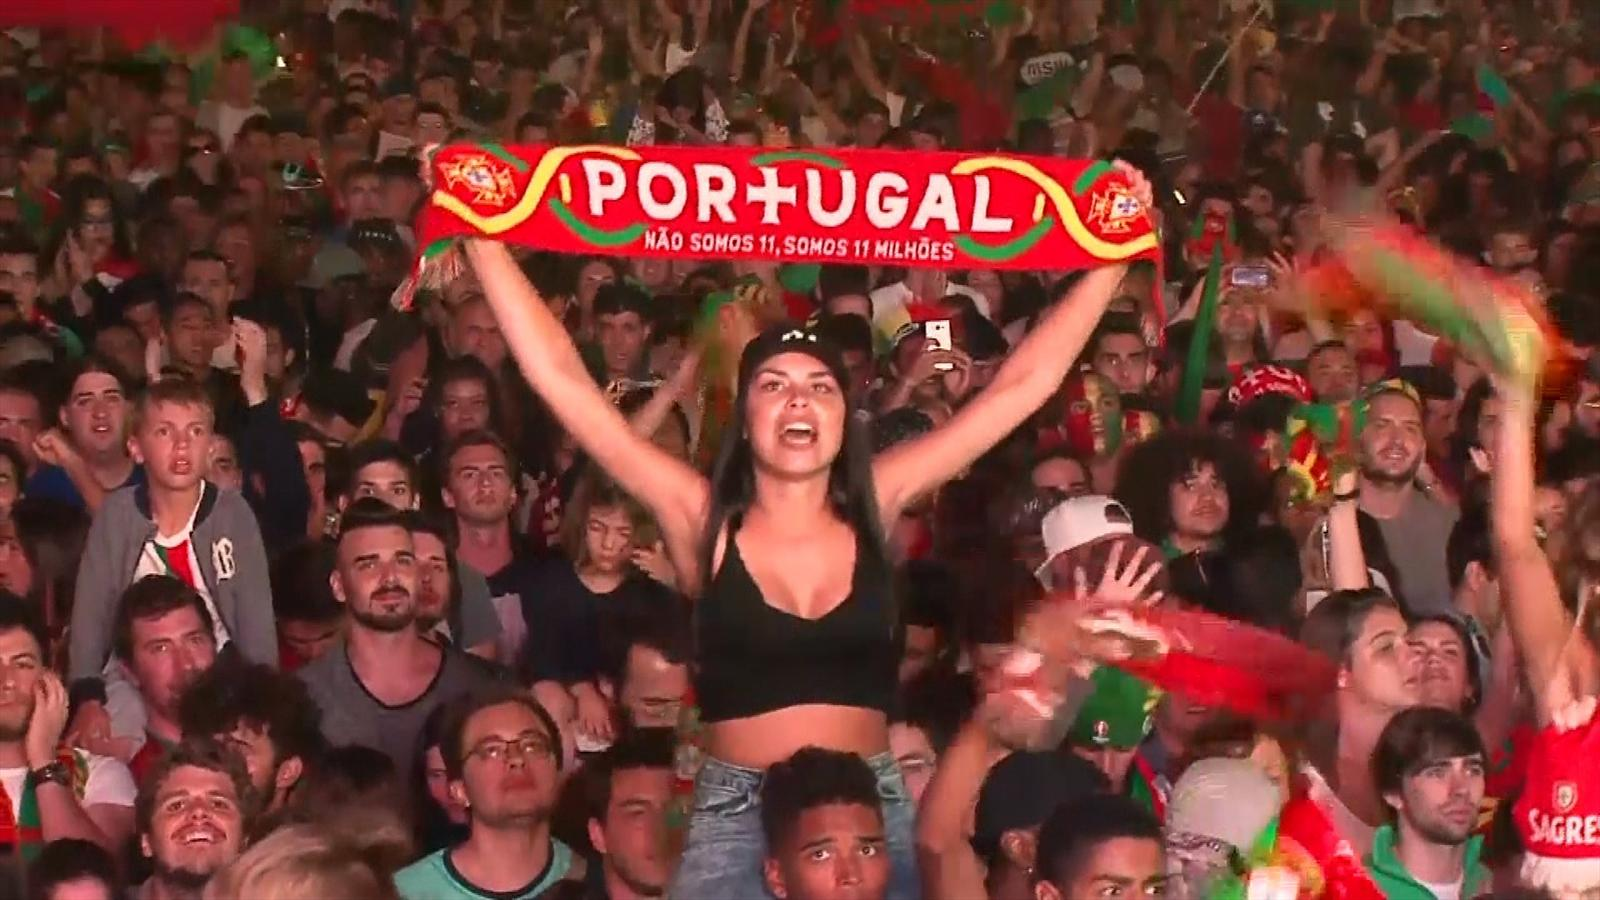 VIDEO - Portugal fans celebrate in Lisbon, managers chew over epic final - Euro 2016 - Video ...